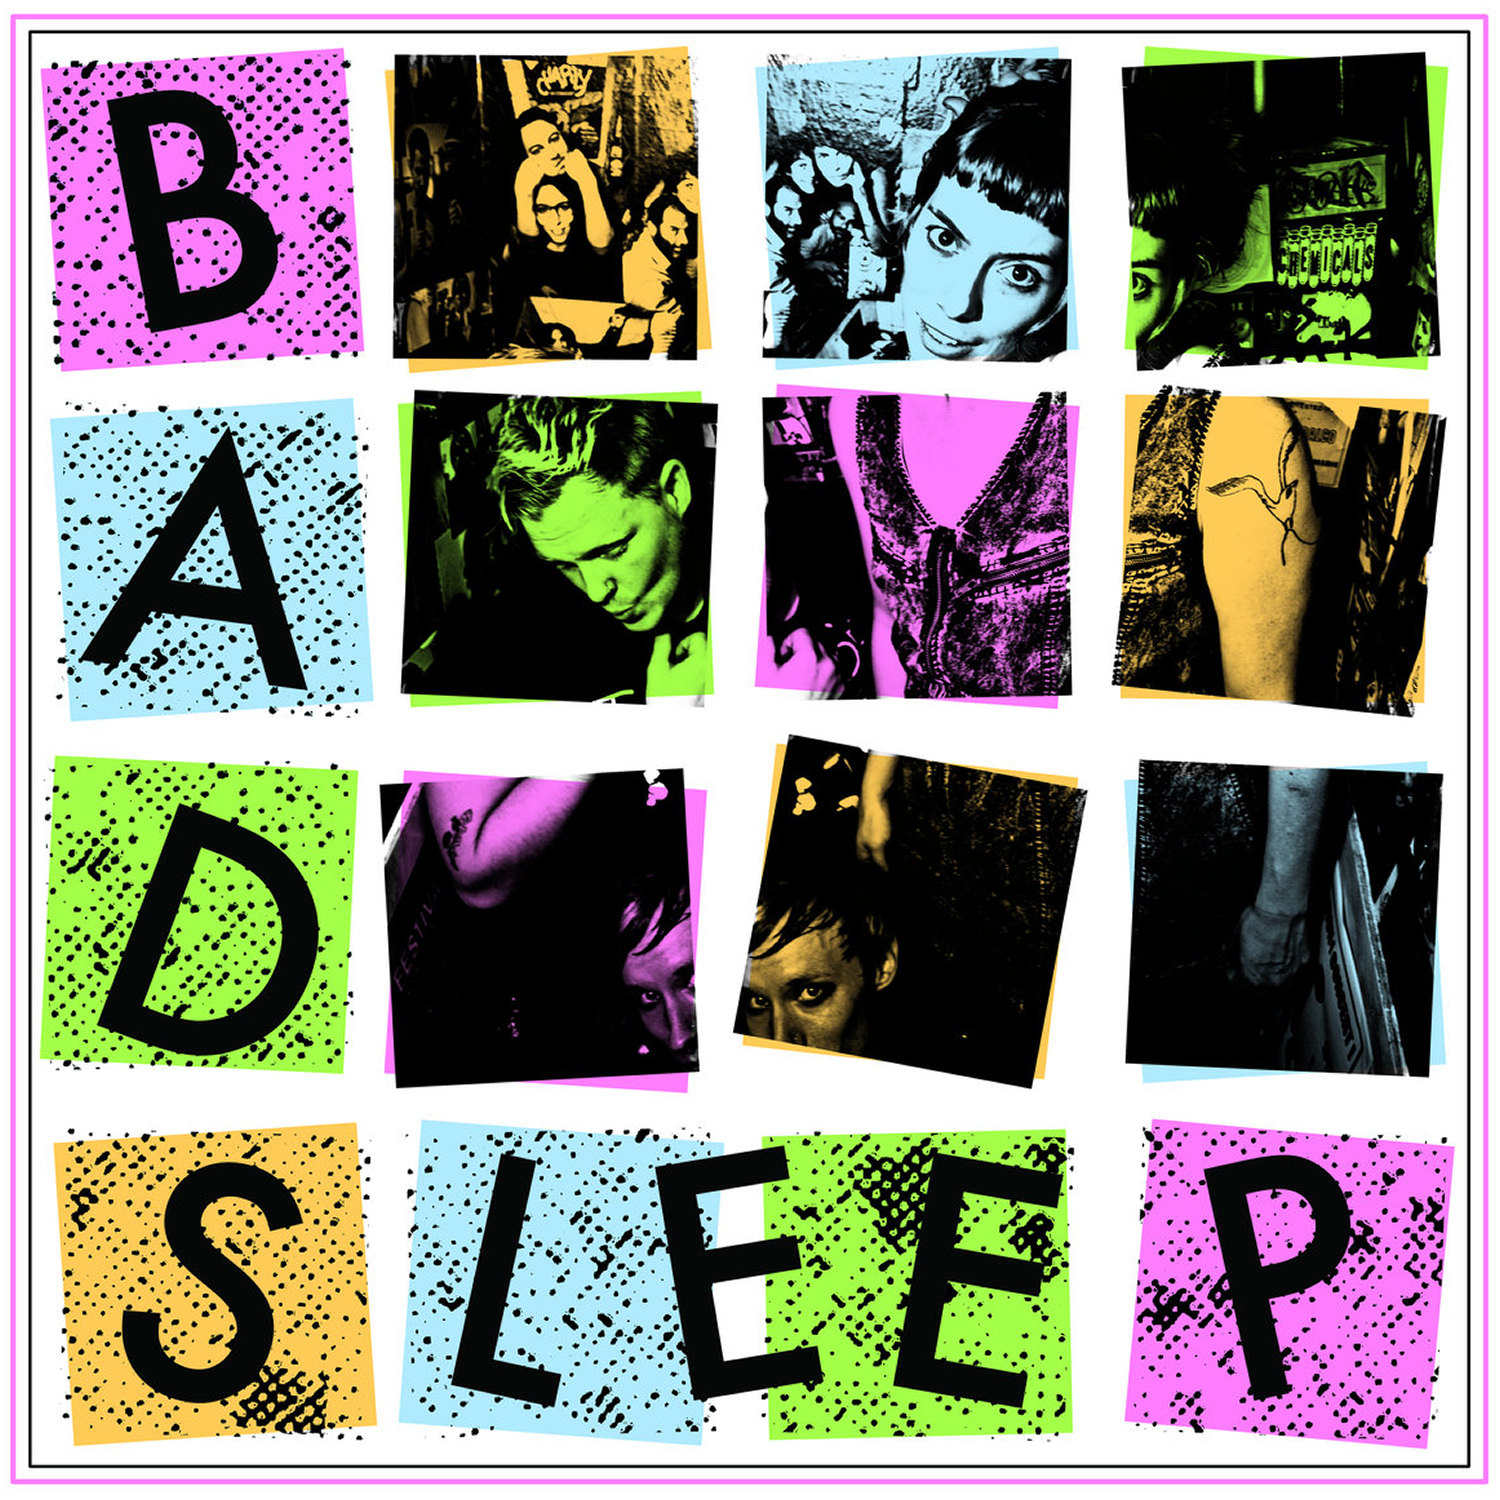 Bad Sleep - s/t LP